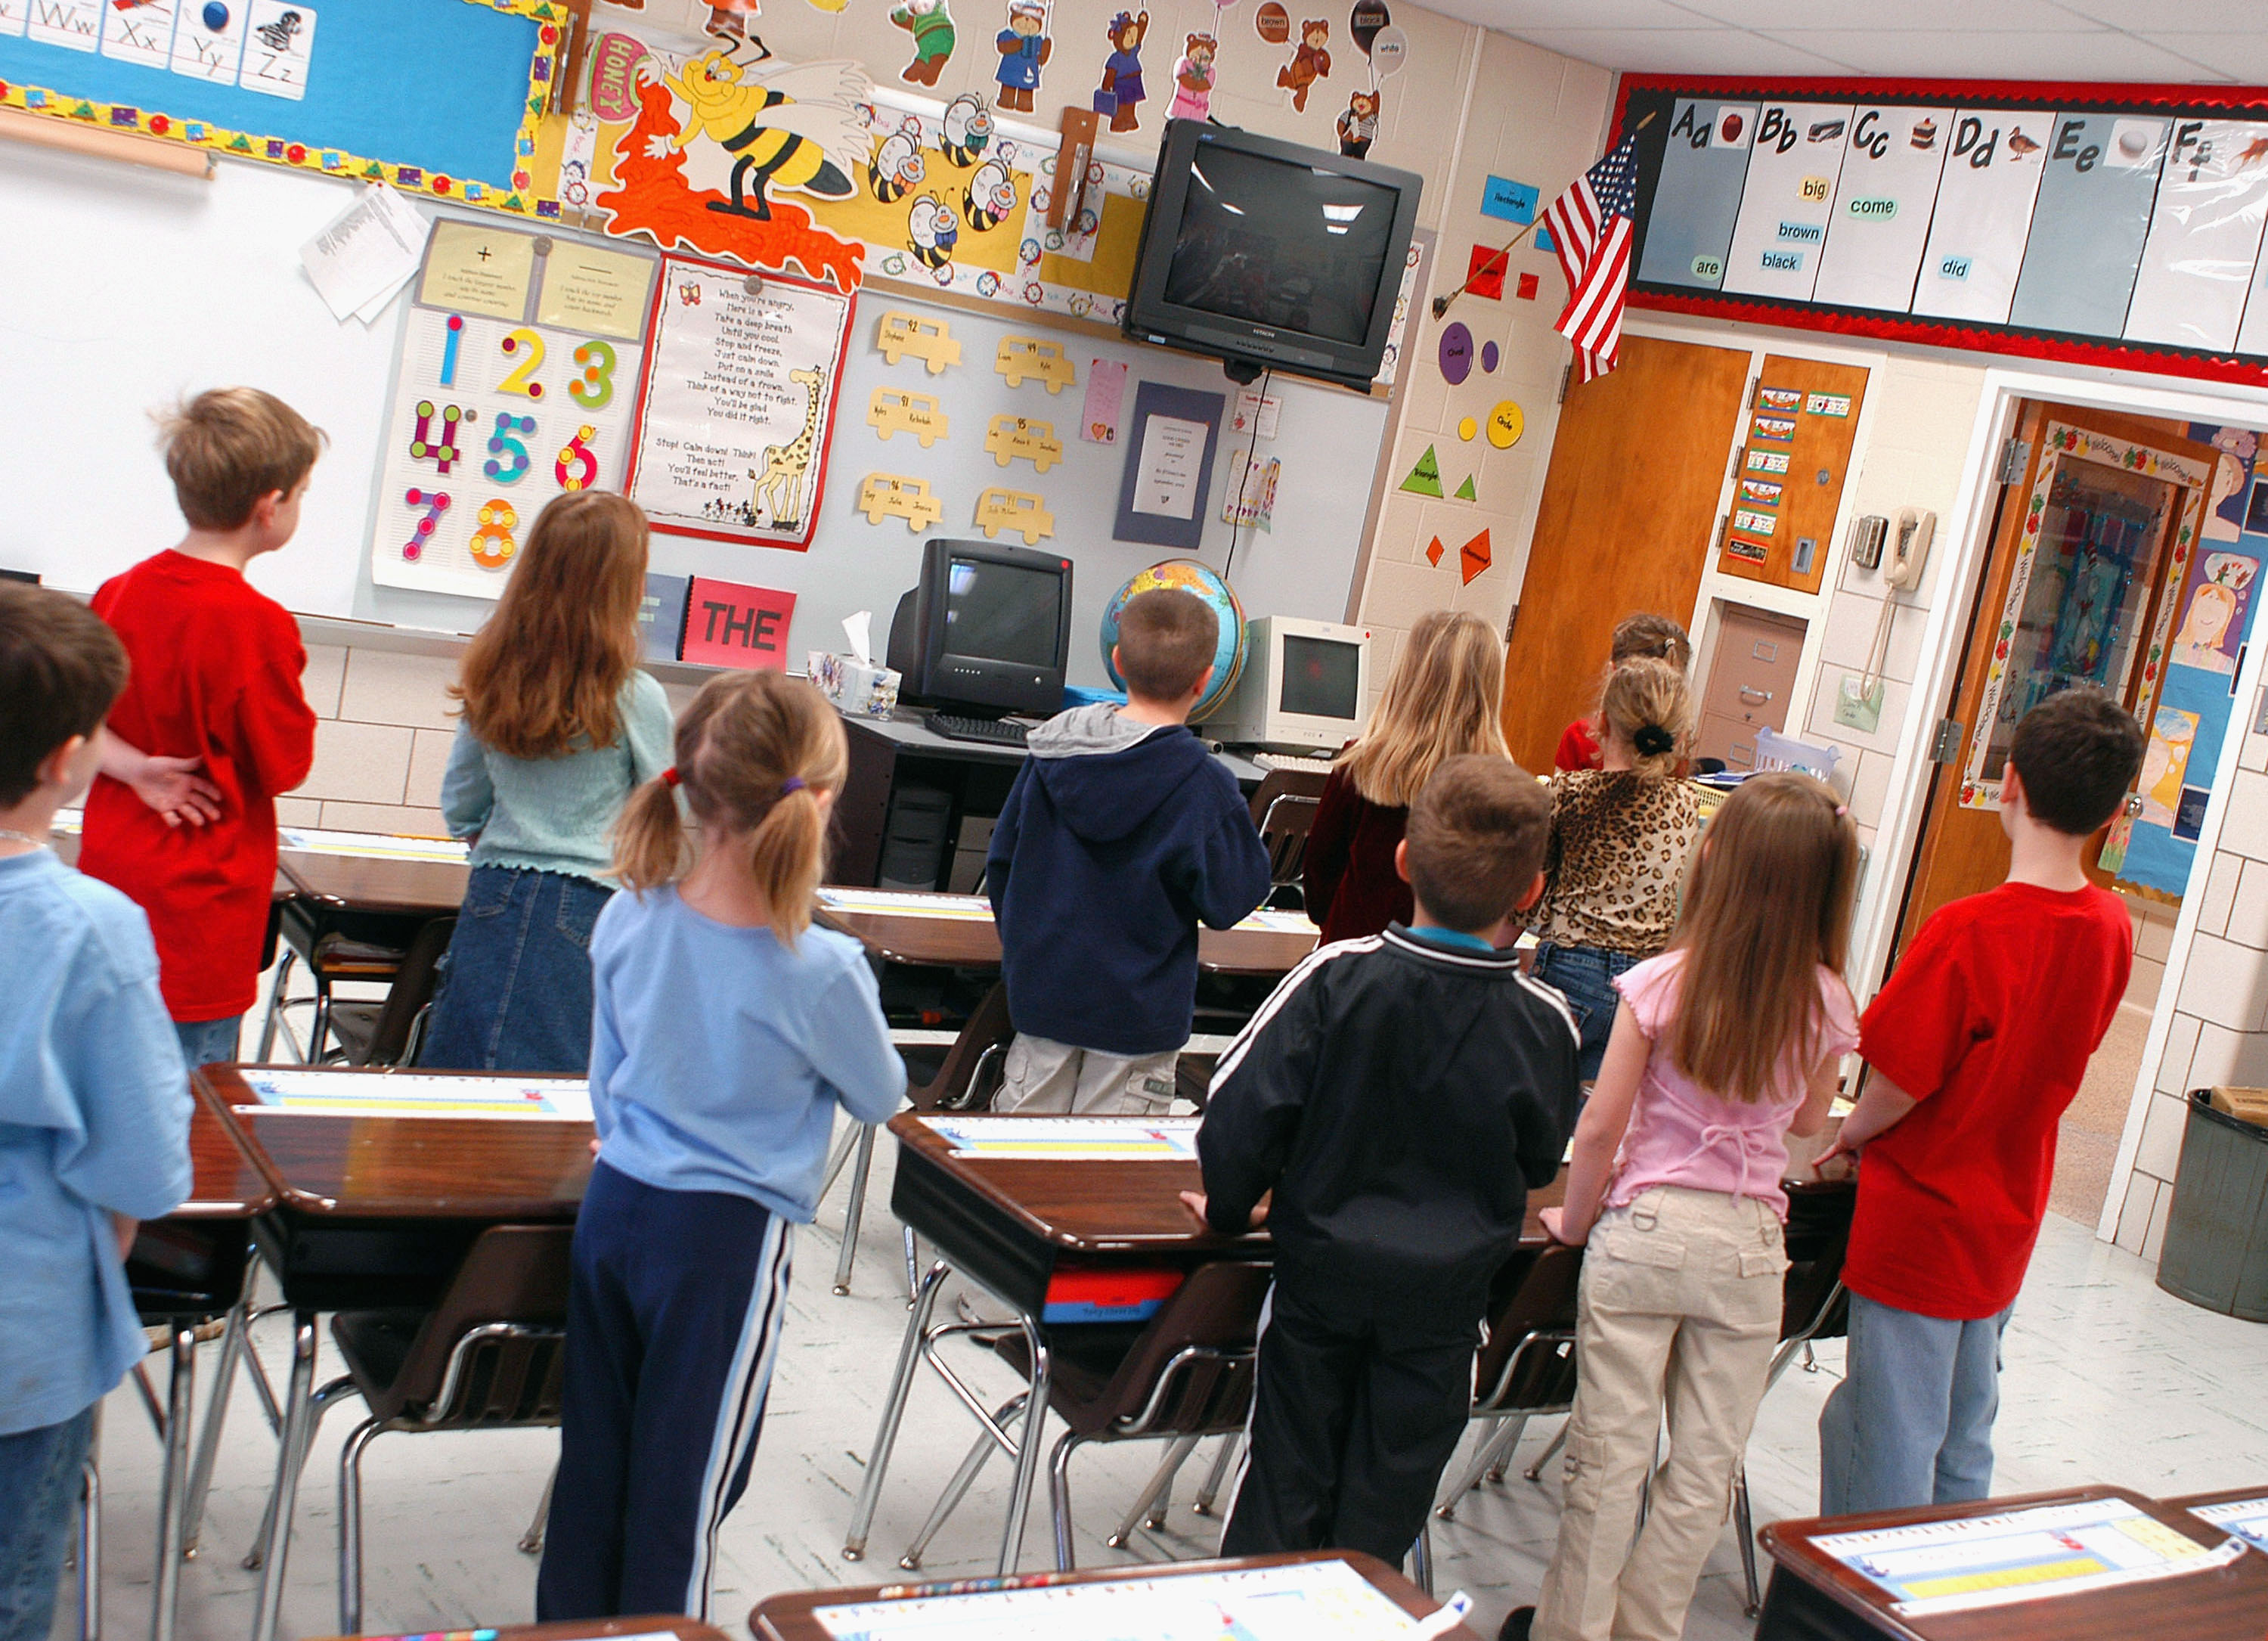 WARMINSTER, PA - MARCH 24: First graders at Longstreth Elementary School pledge allegiance to the flag March 24, 2004 in Warminster, Pennsylvania. (Photo by William Thomas Cain/Getty Images)